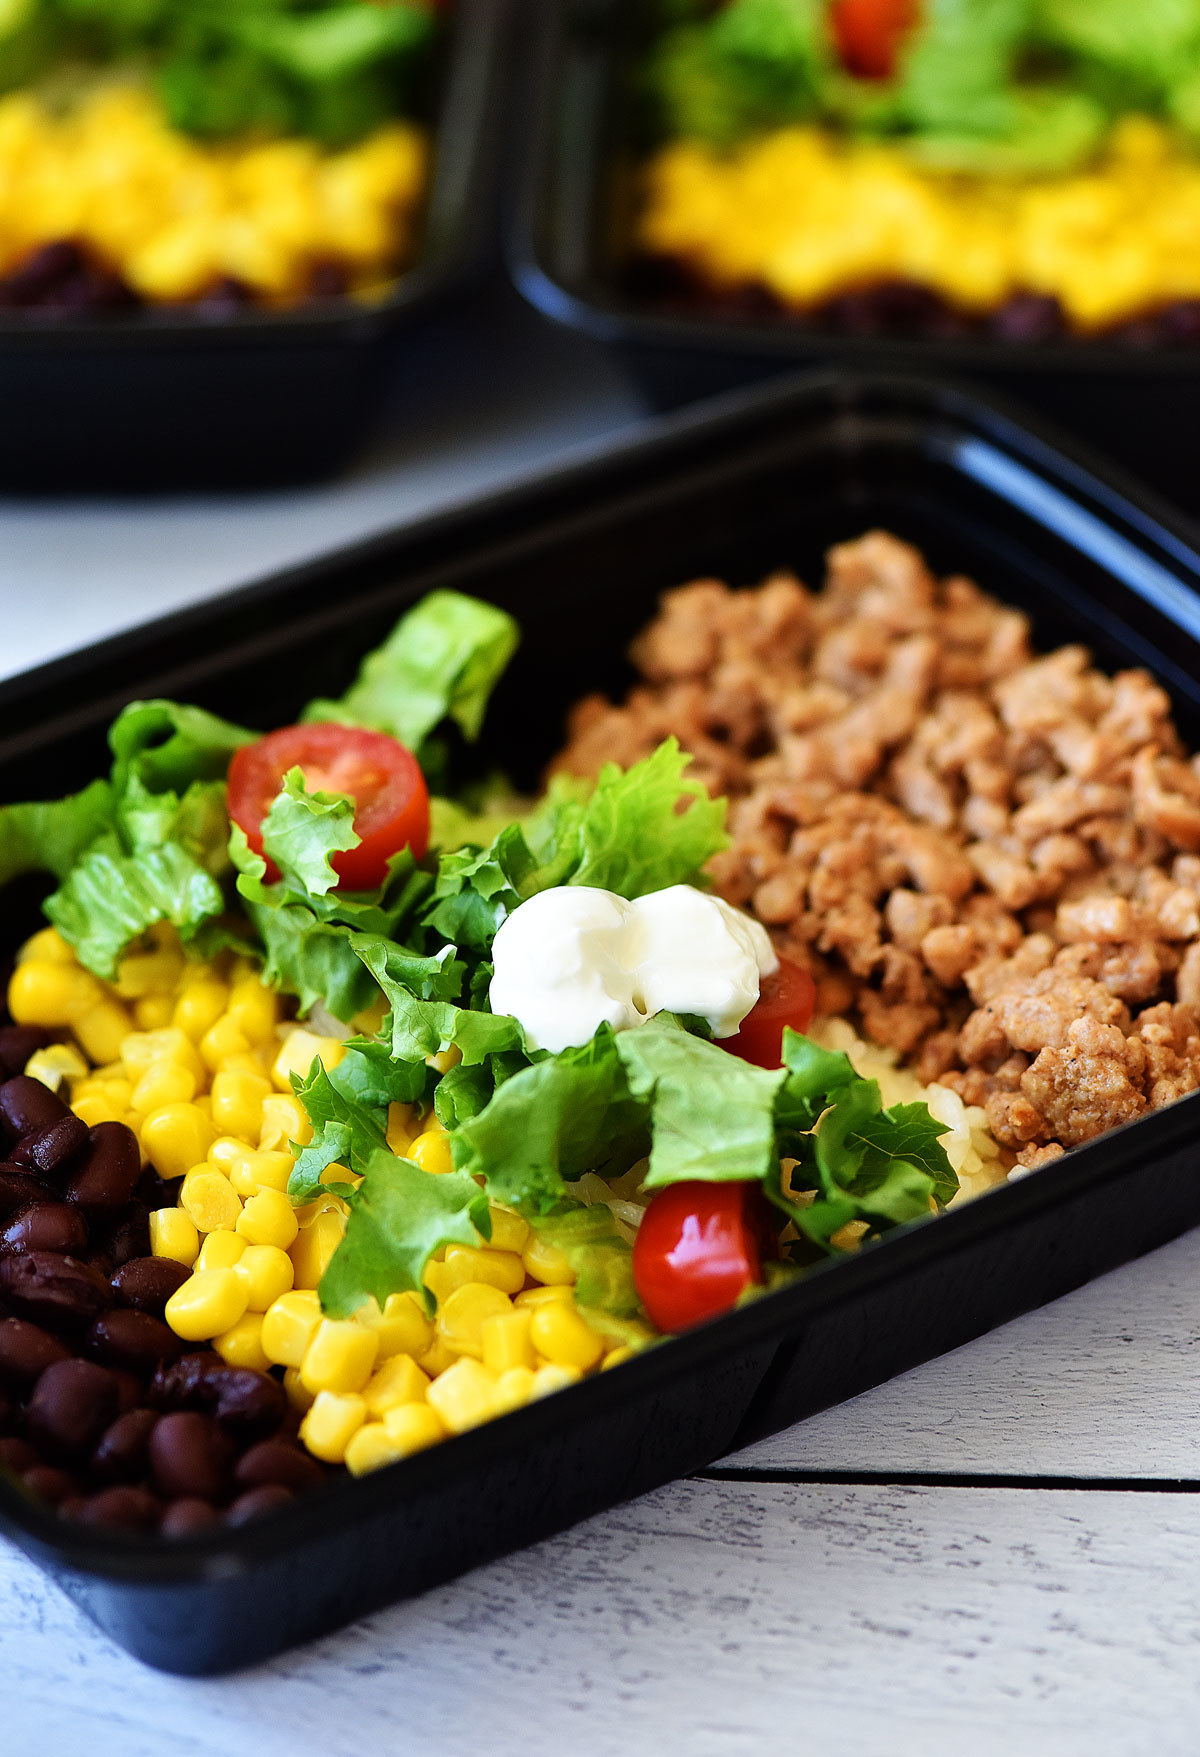 Meal prep bowls with ground turkey meat, lettuce, corn, black beans, and tomato.